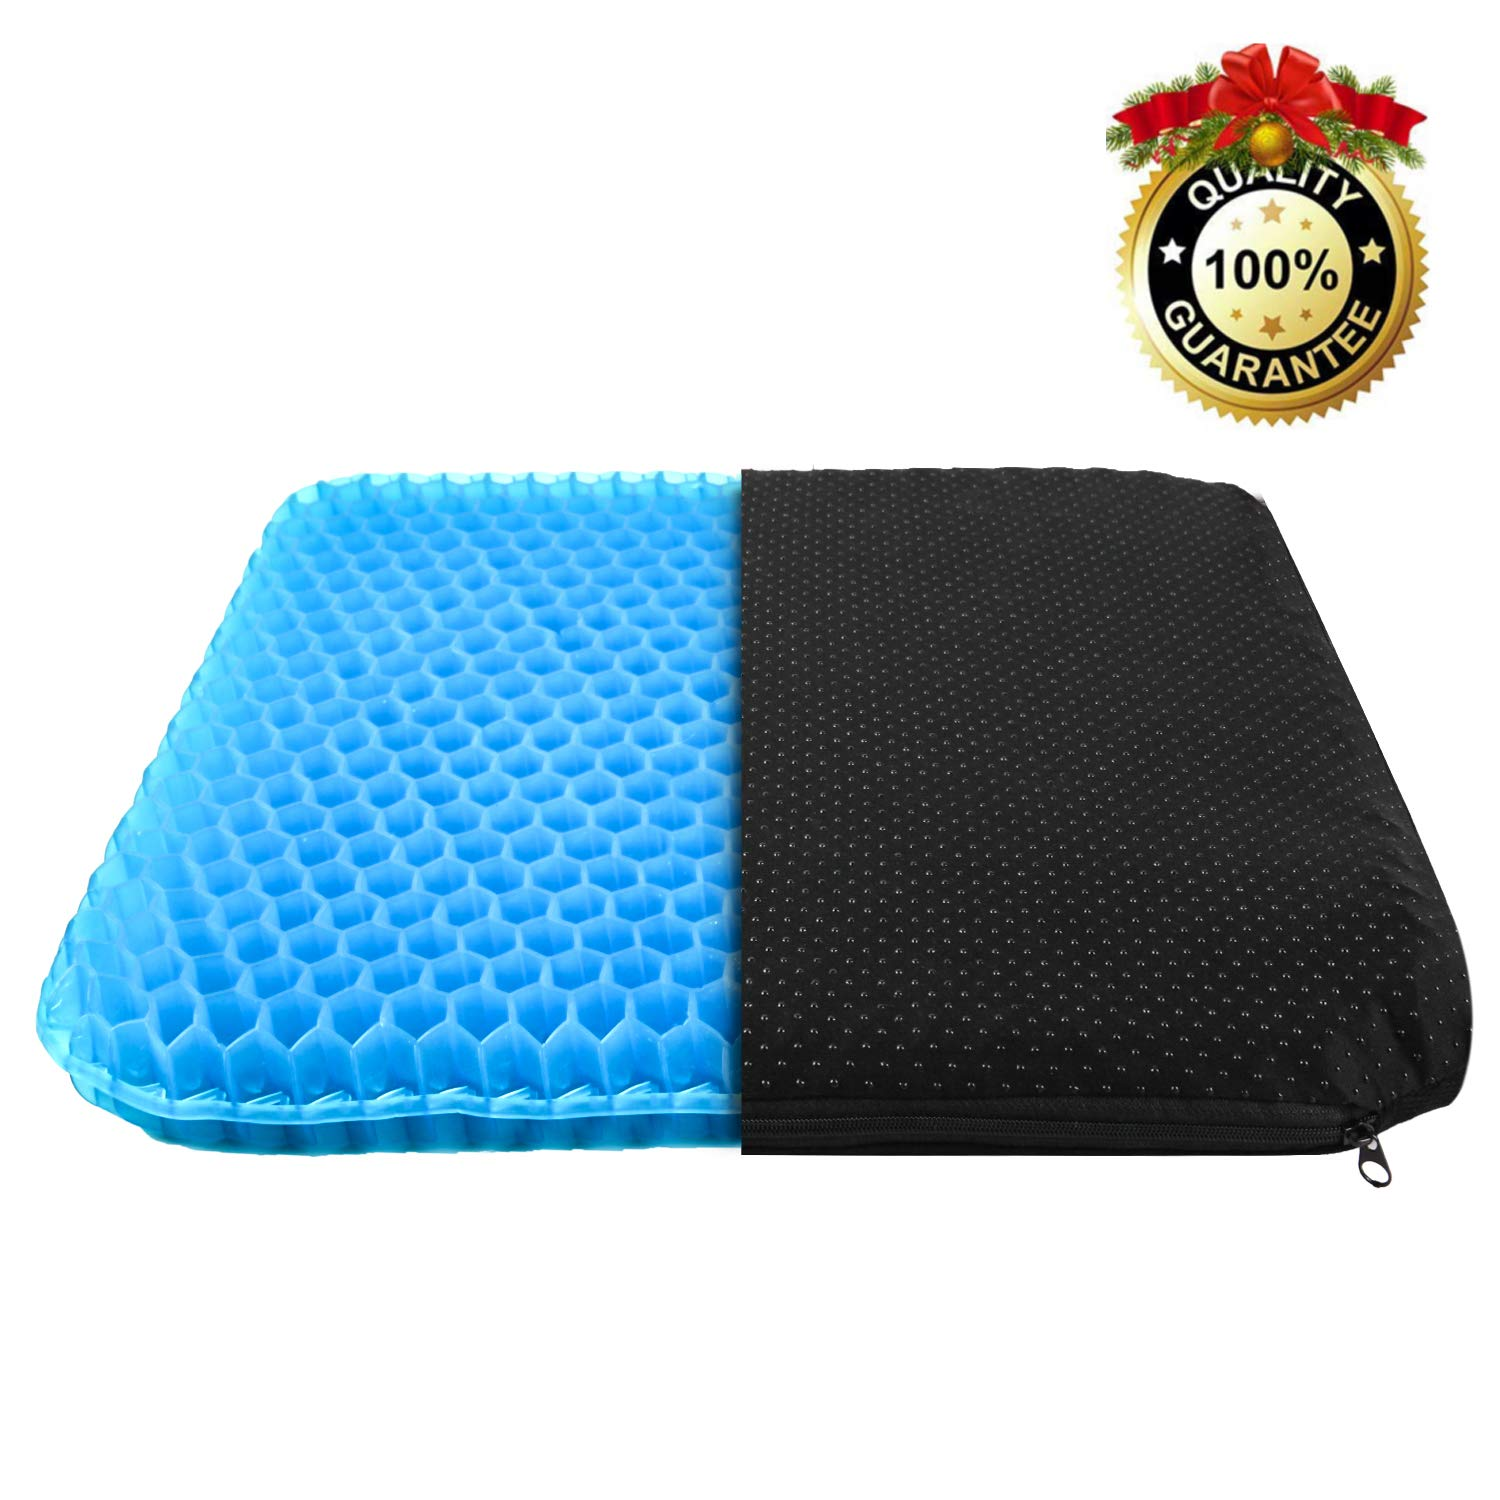 LETTON Gel Seat Cushion,Thickened Double-Layer Seat Cushion for Back & Tailbone Pain Relief Cushion,Honeycomb Structure Breathable seat Cushion for Office/Car/Wheelchair with Cushion Cover